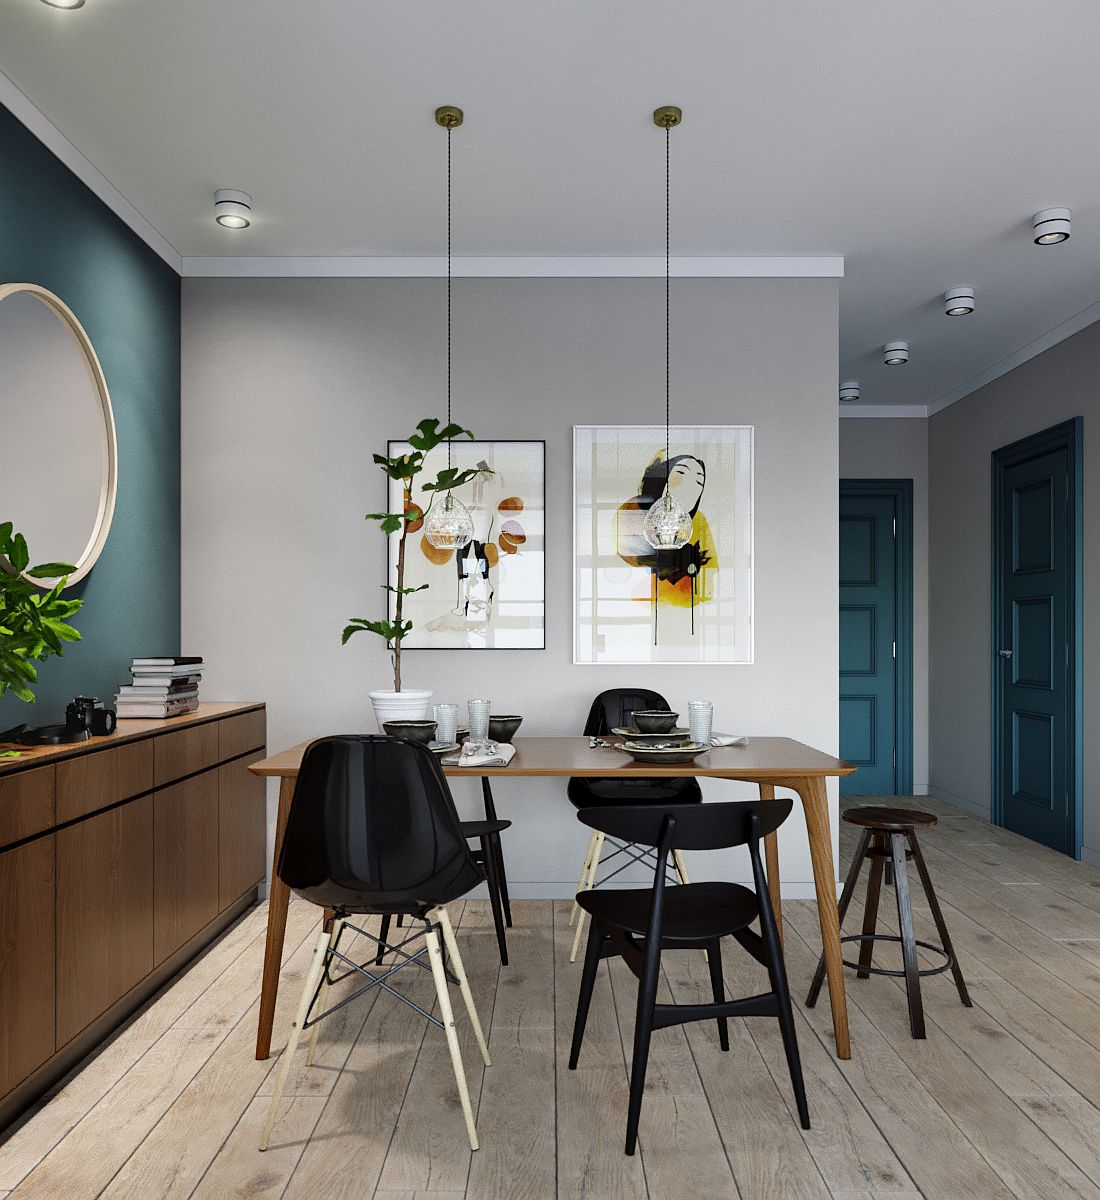 Dining room with a neutral color palette, blue accent wall and wooden storage unit